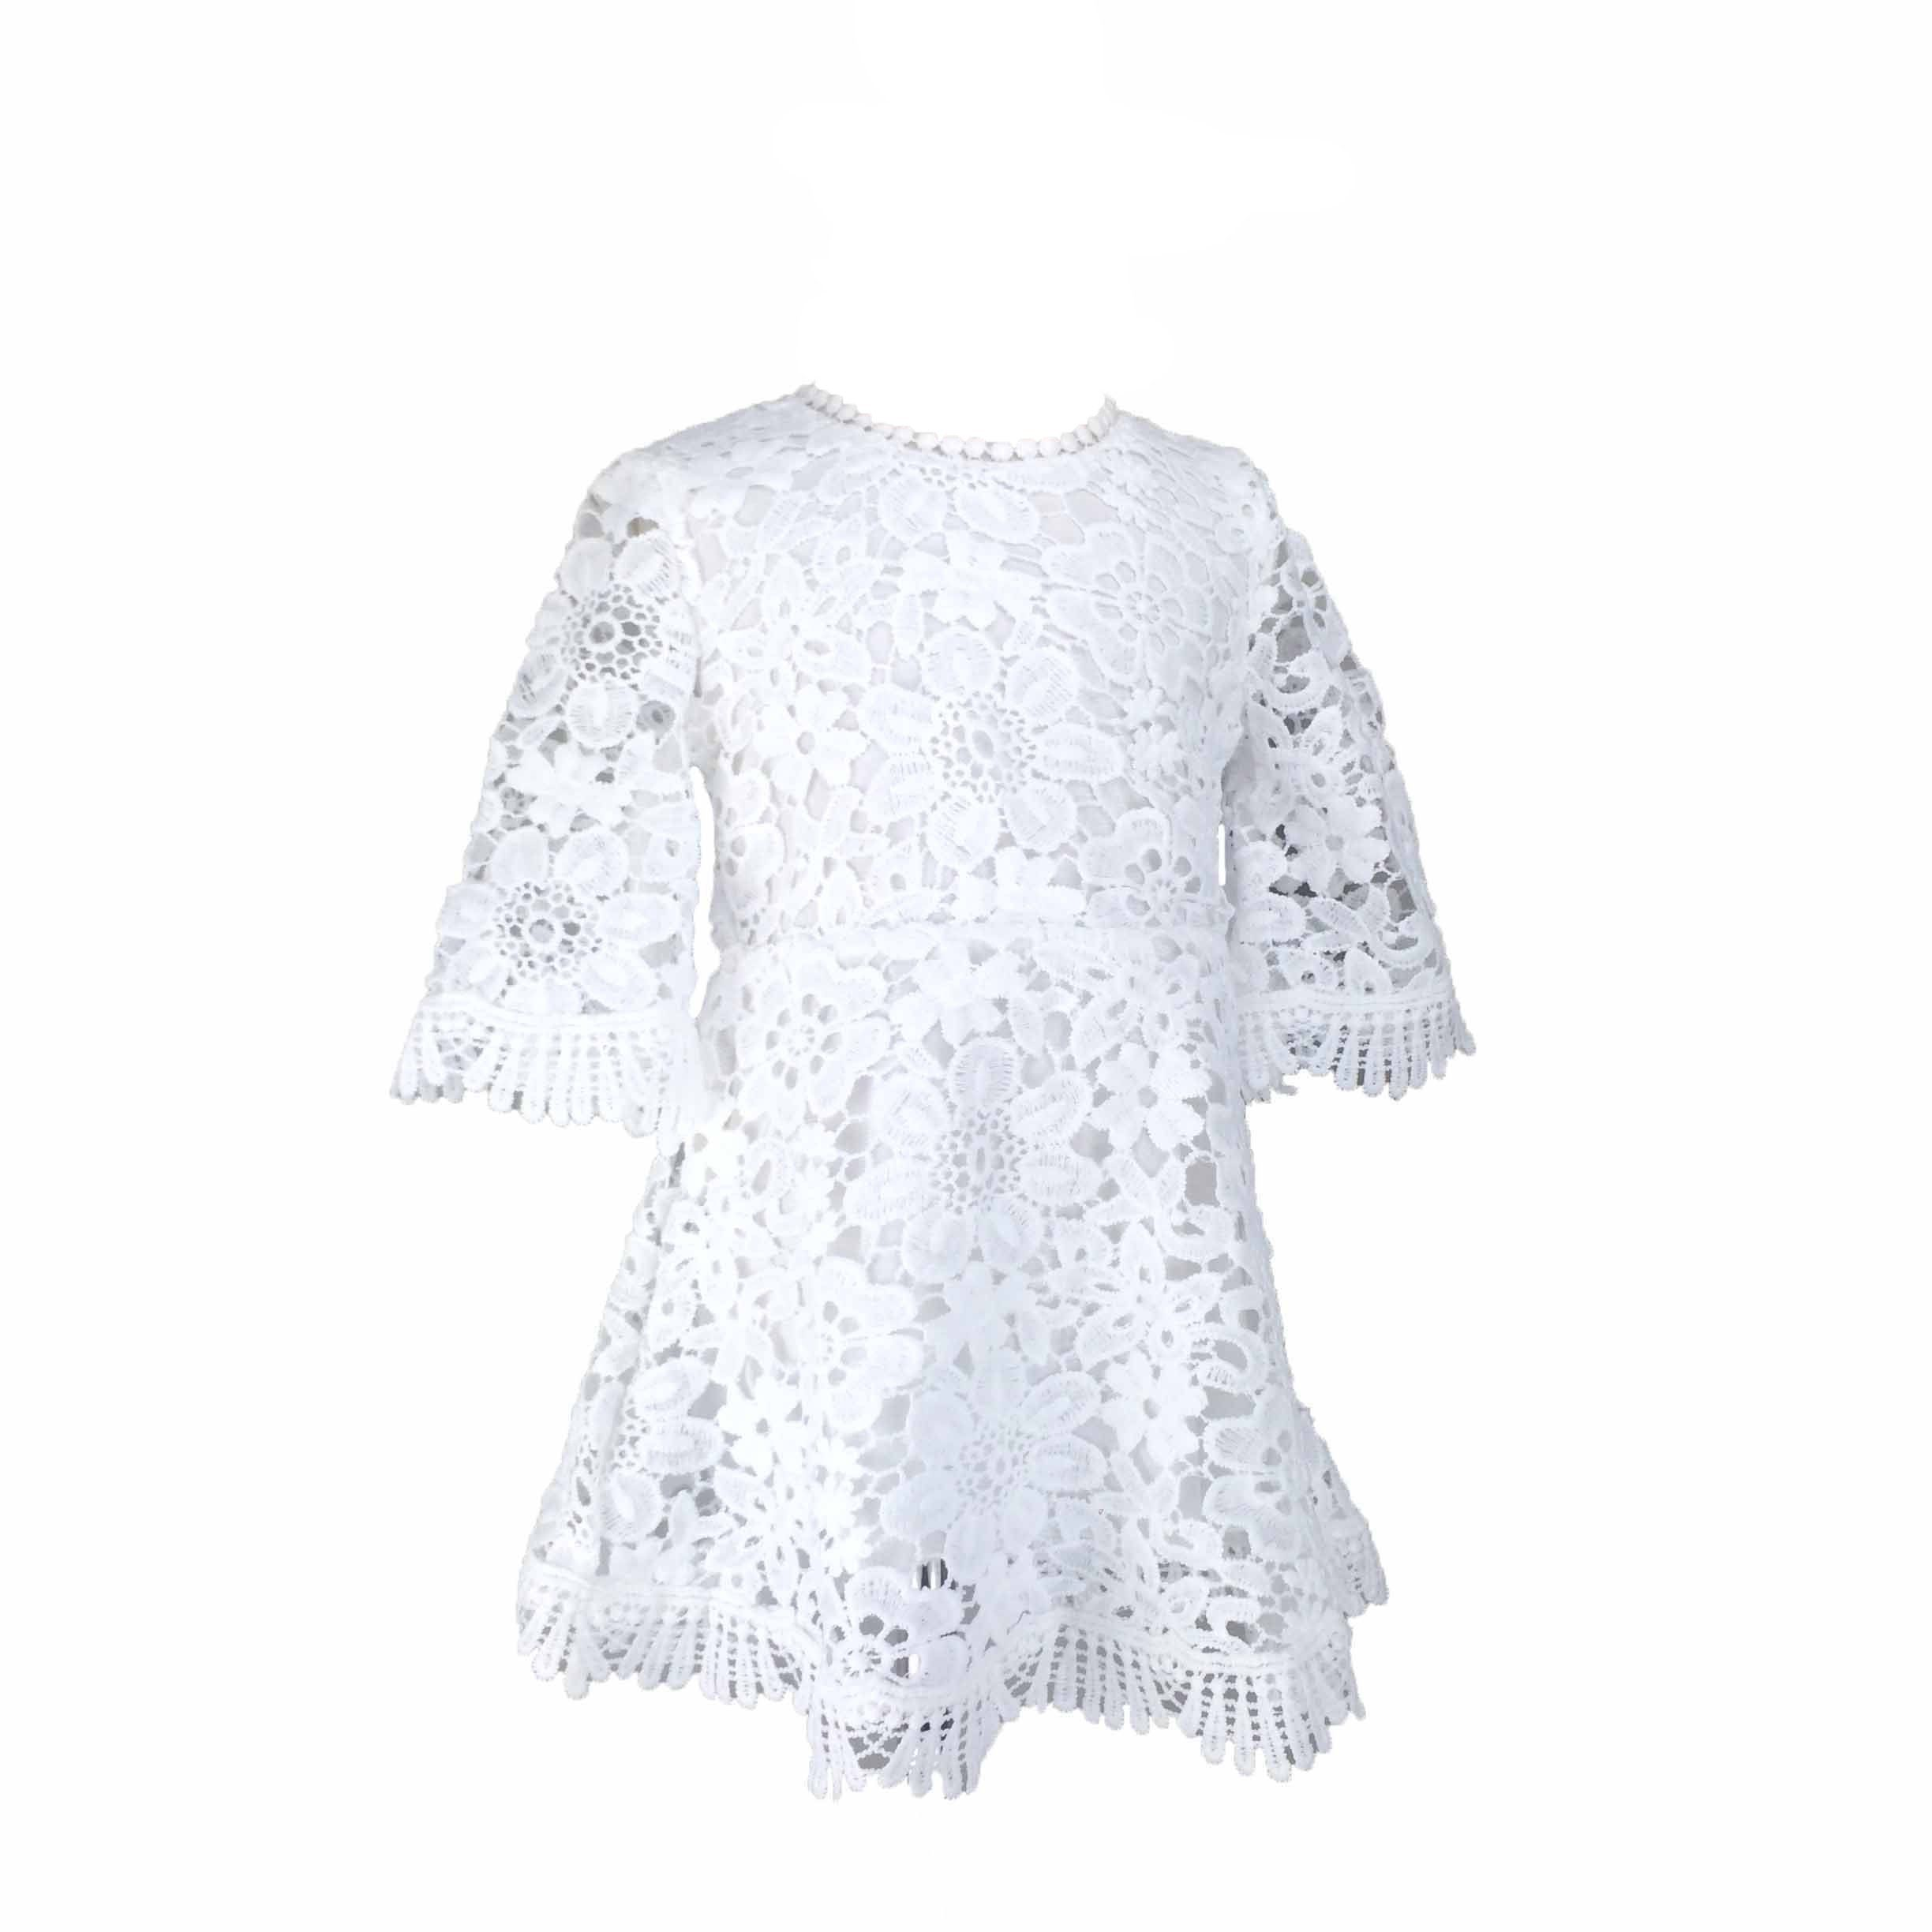 Kids Girls Lace Dress Bell Sleeve Summer Fall Party White Dresses 4t Size 1 2 3 4 For Toddler Girls 1 Girls Lace Dress Girls Ruffle Dress White Dress Party [ 2448 x 2448 Pixel ]